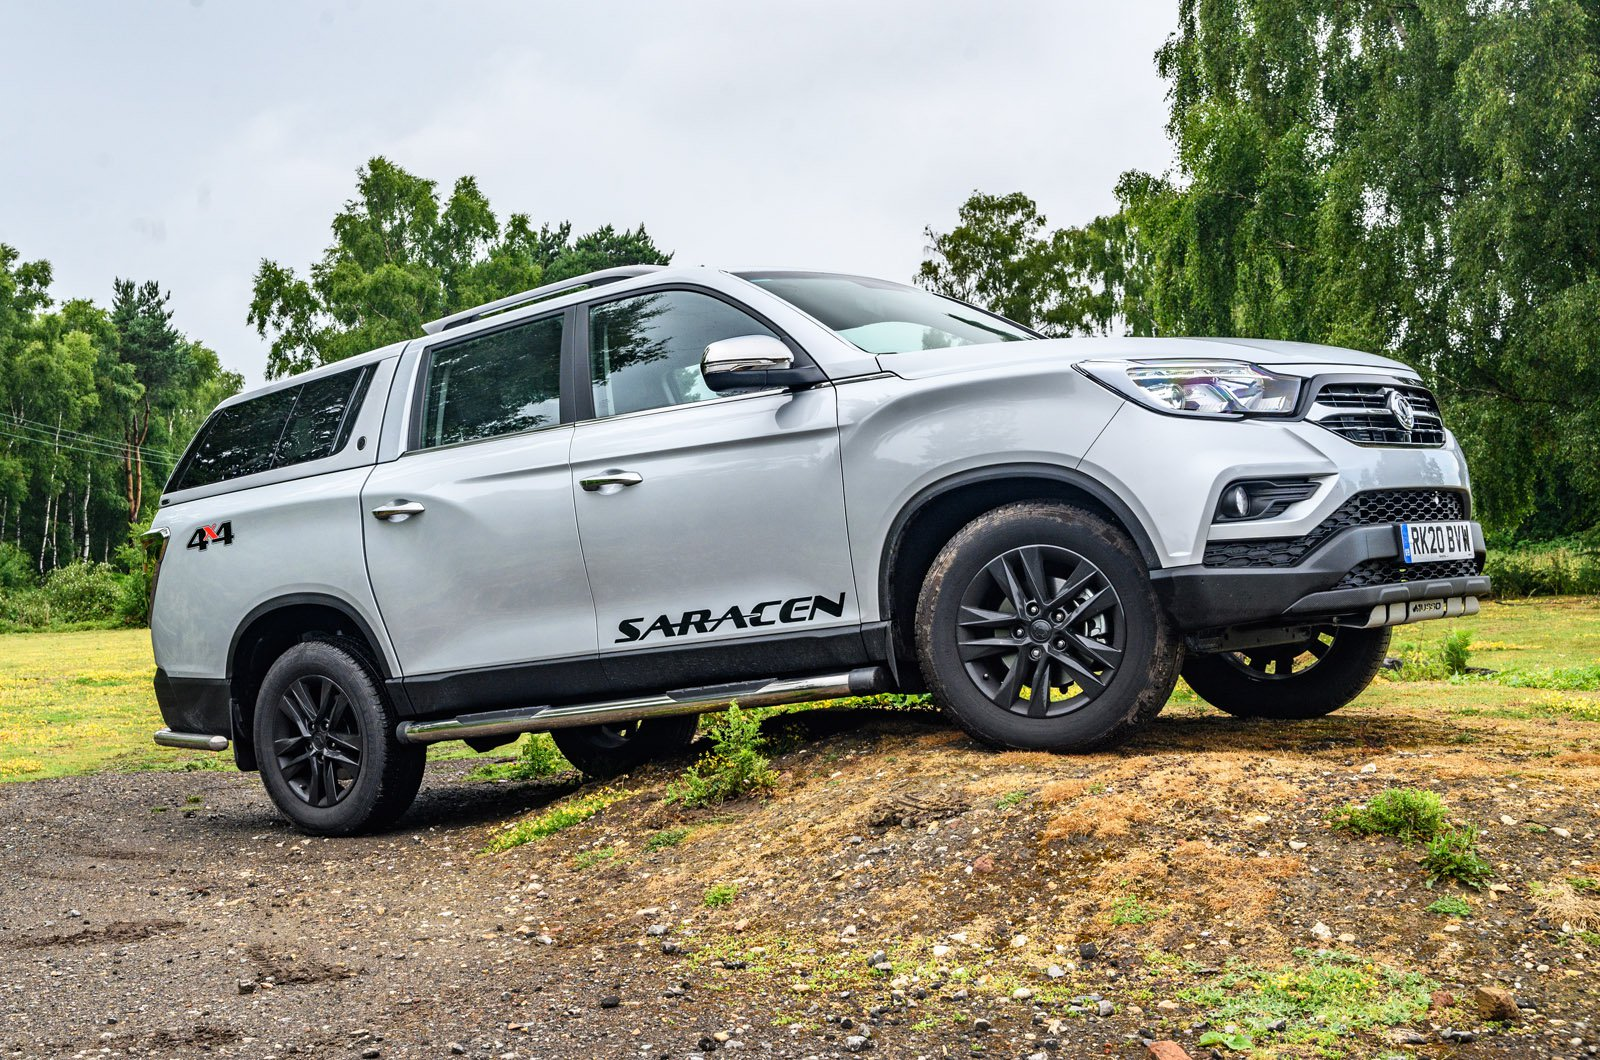 LT Ssangyong Musso off road